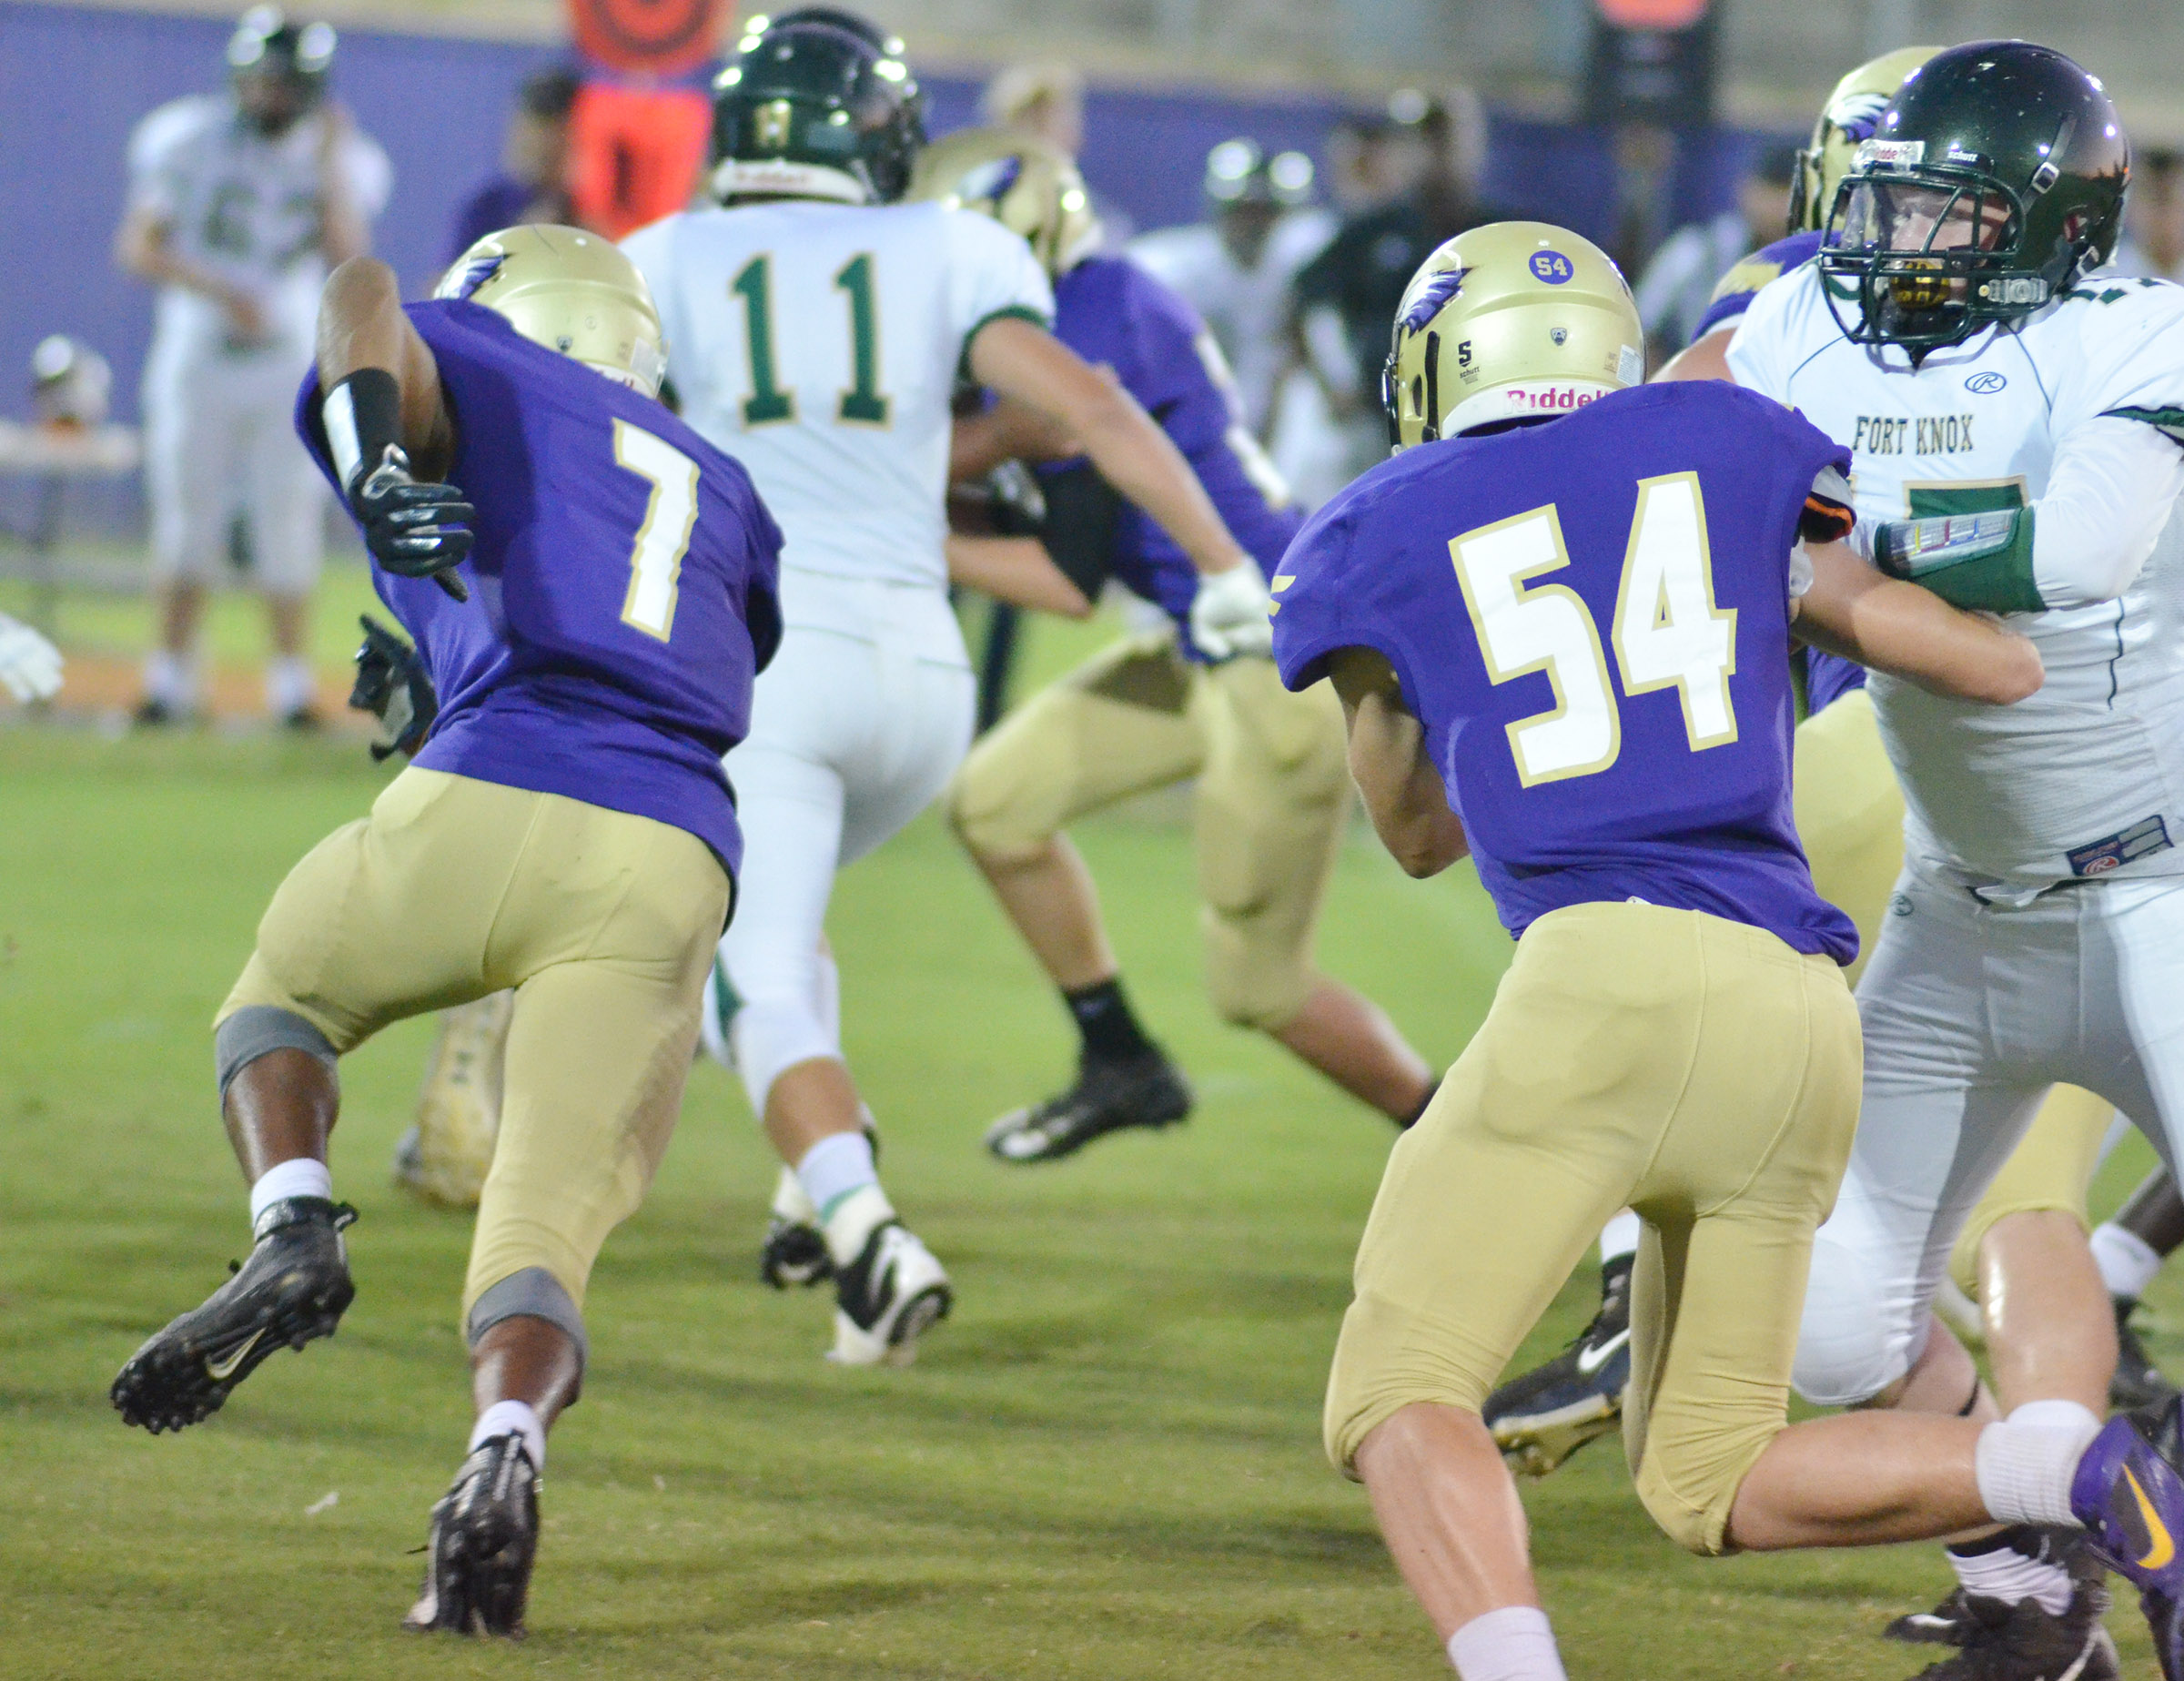 CHS senior Devonte Cubit, at left, and sophomore Devon Reardon tackle.